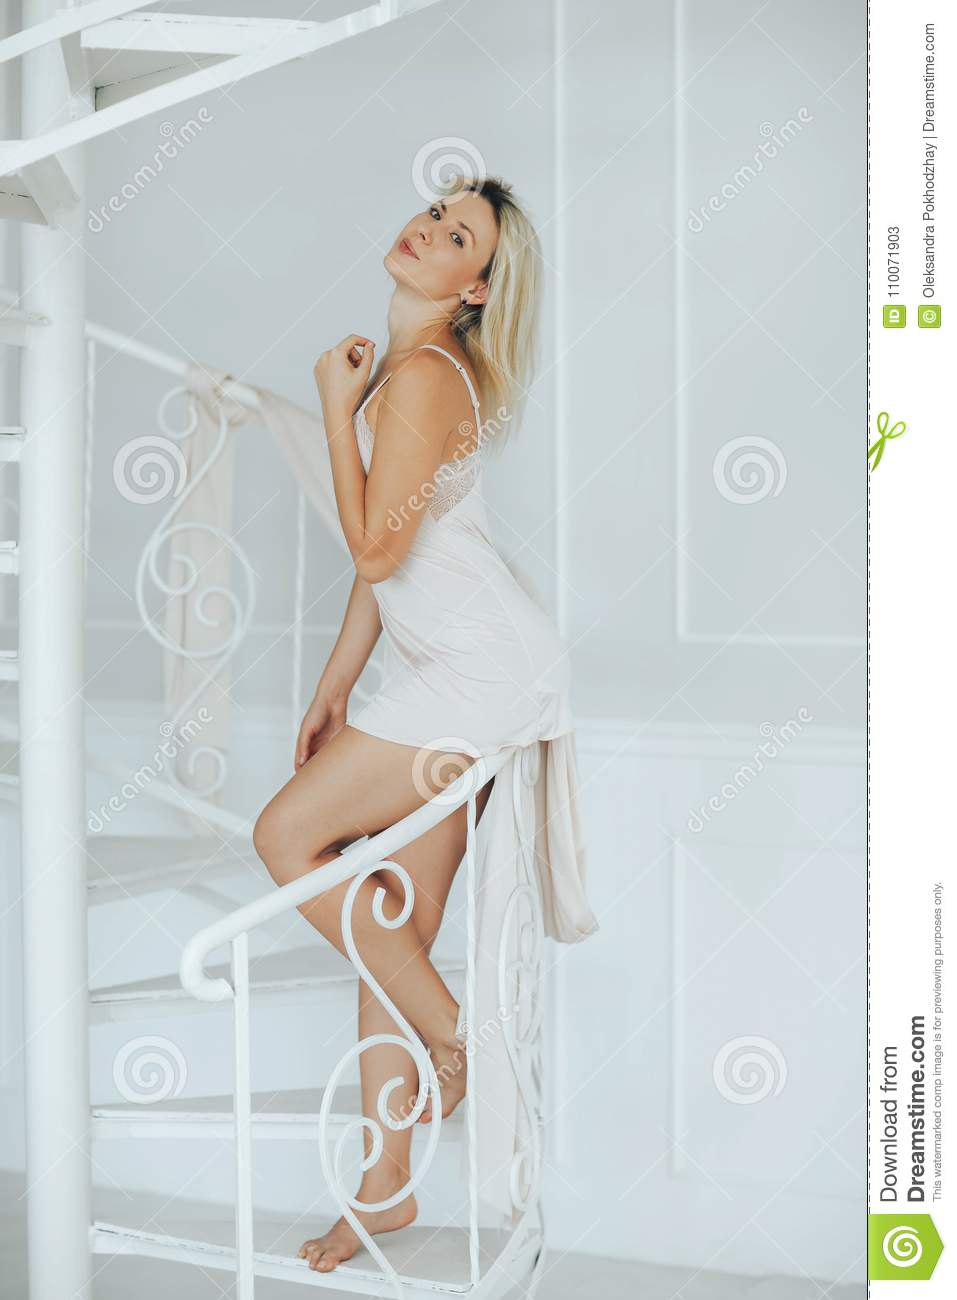 d23f5eec0b0 Blonde Woman Posing In White Lingerie Stock Image - Image of luxury ...